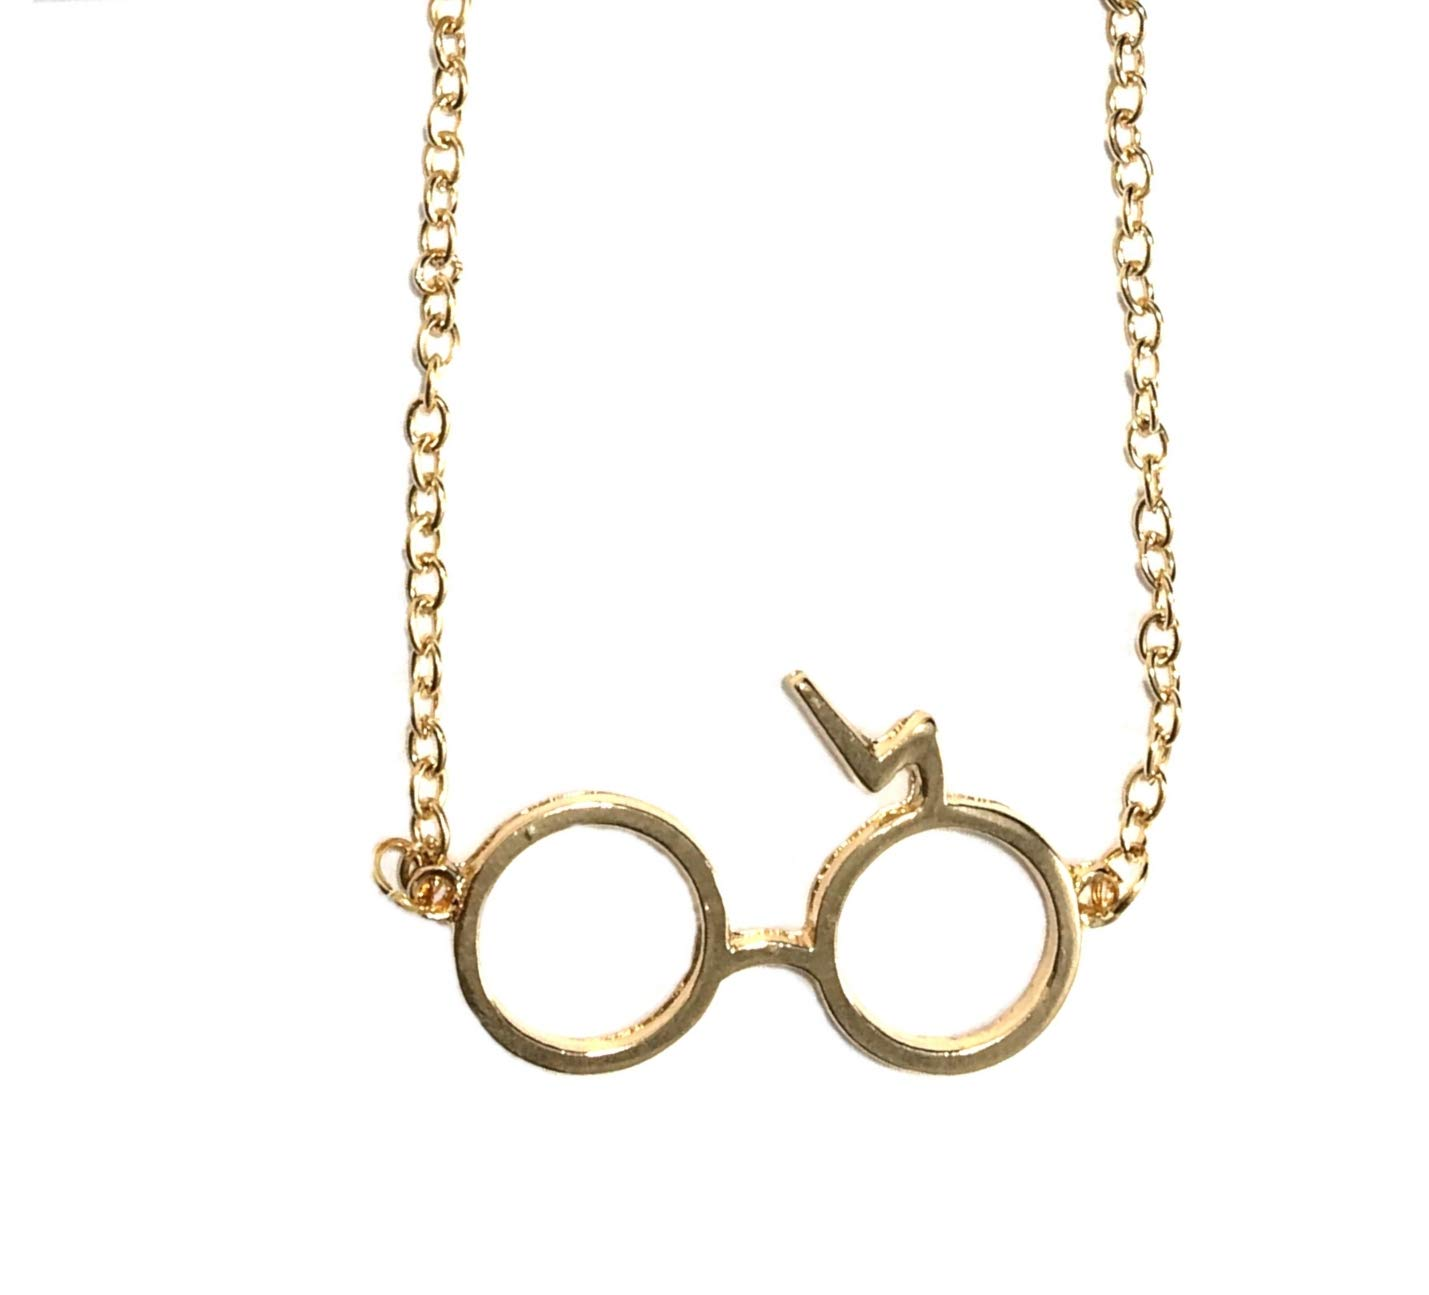 Gold Color Harry Potter Glasses Necklace with Muslin Bag for Gift